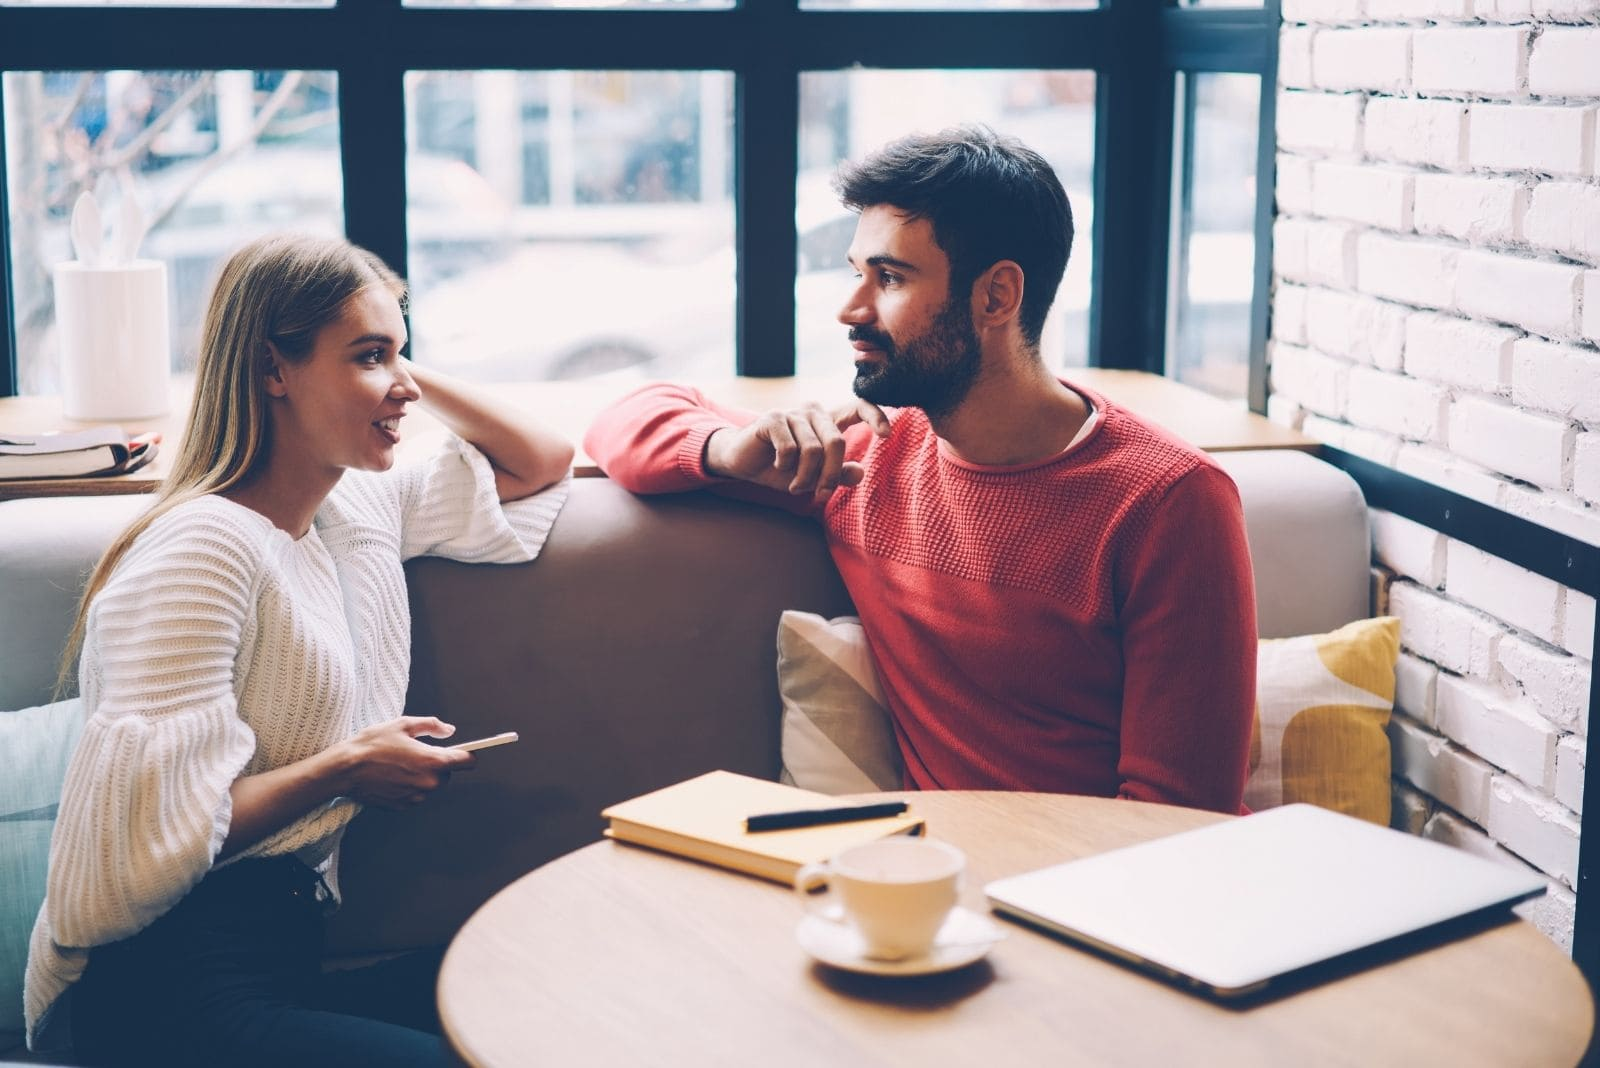 college man and woman talking inside the cafe with coffee on table